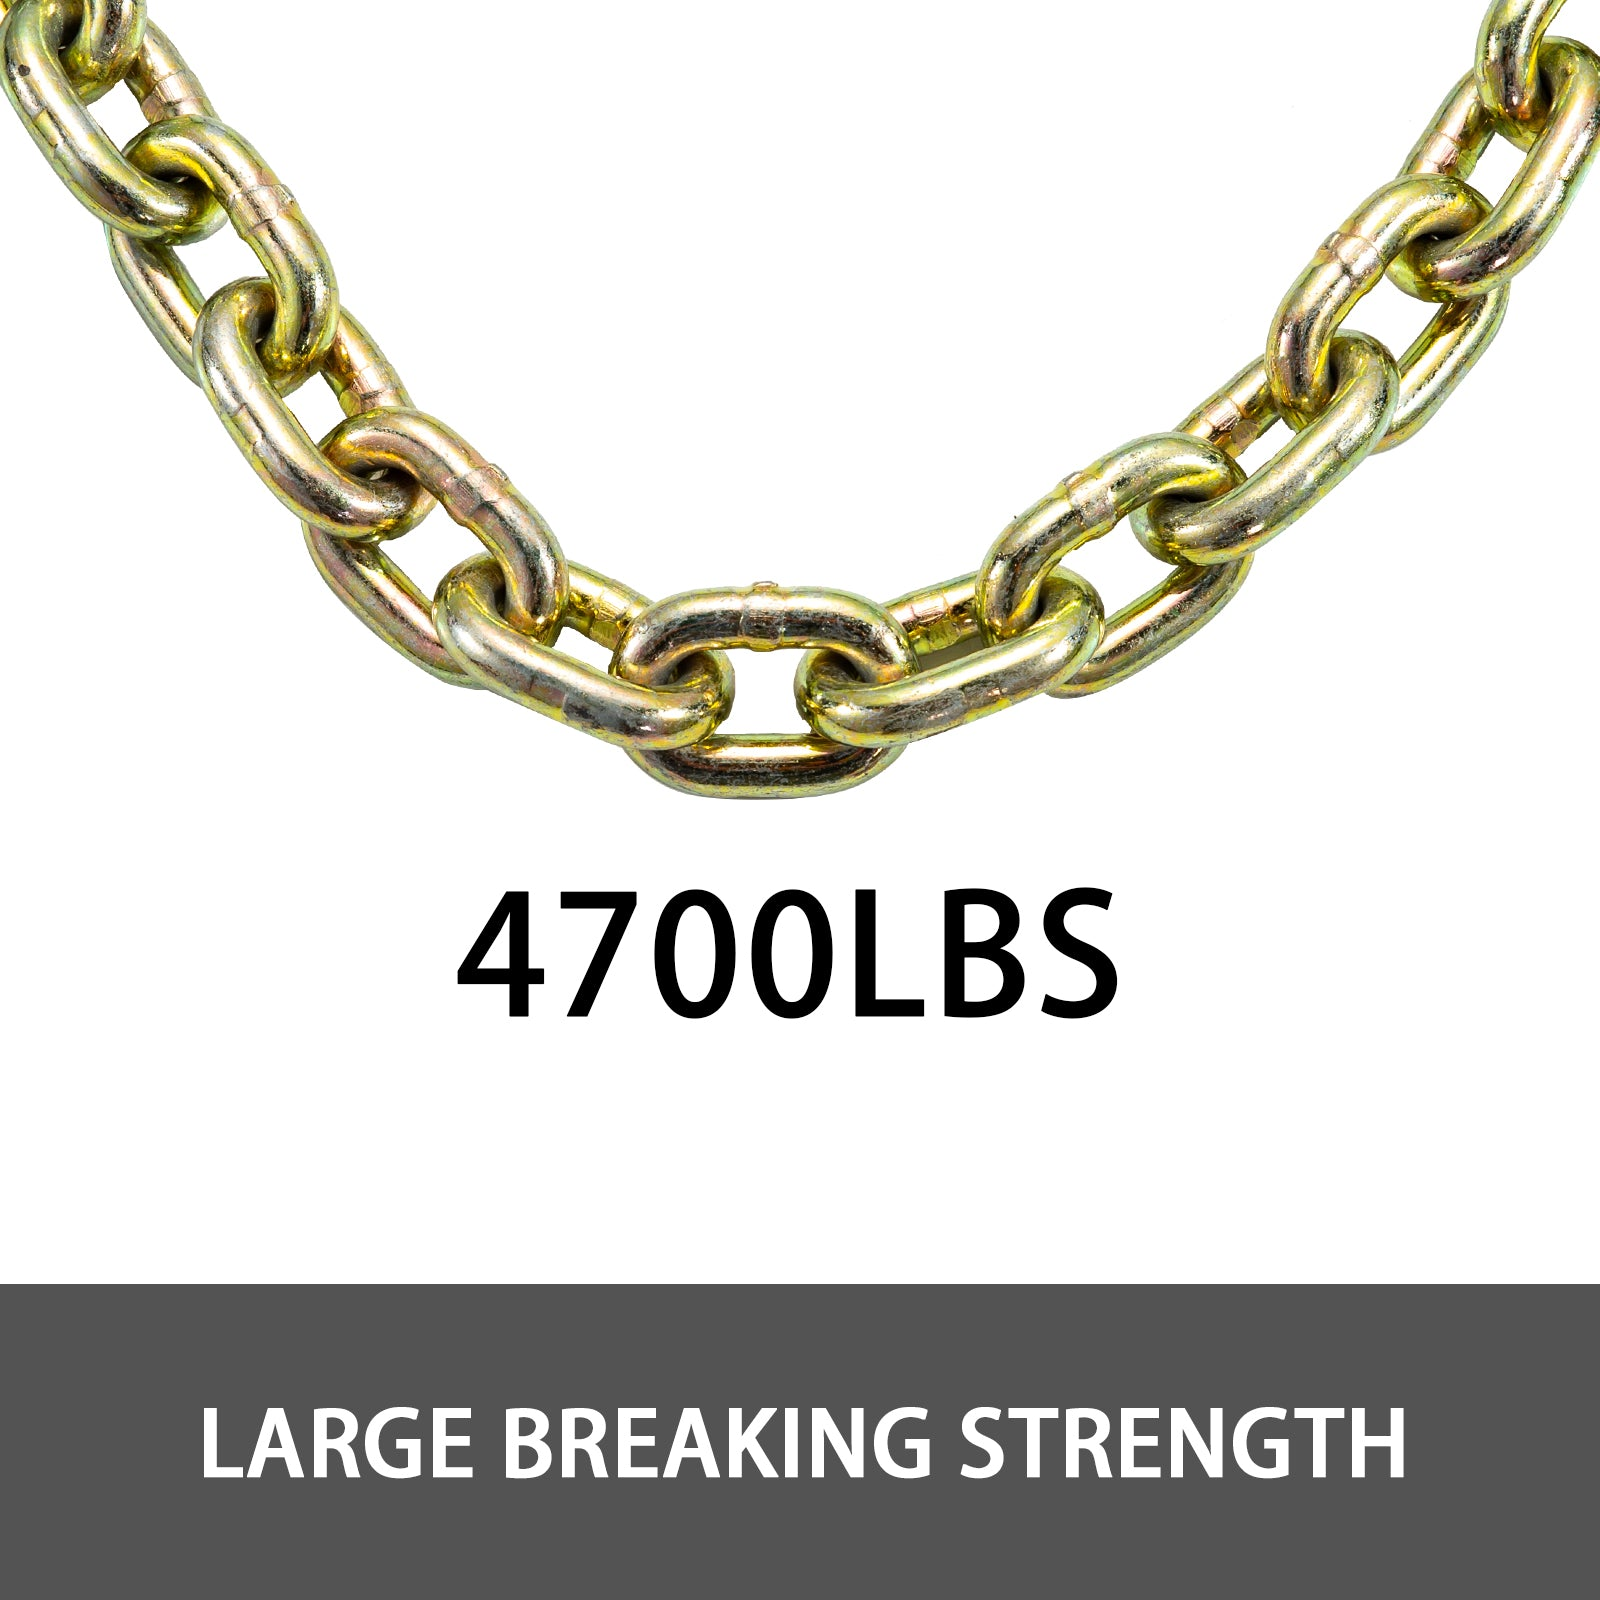 "Tow Chain Grade 70 Chain 5/16""x21' With Safety Grab Hooksfor Logging 1 Pair"